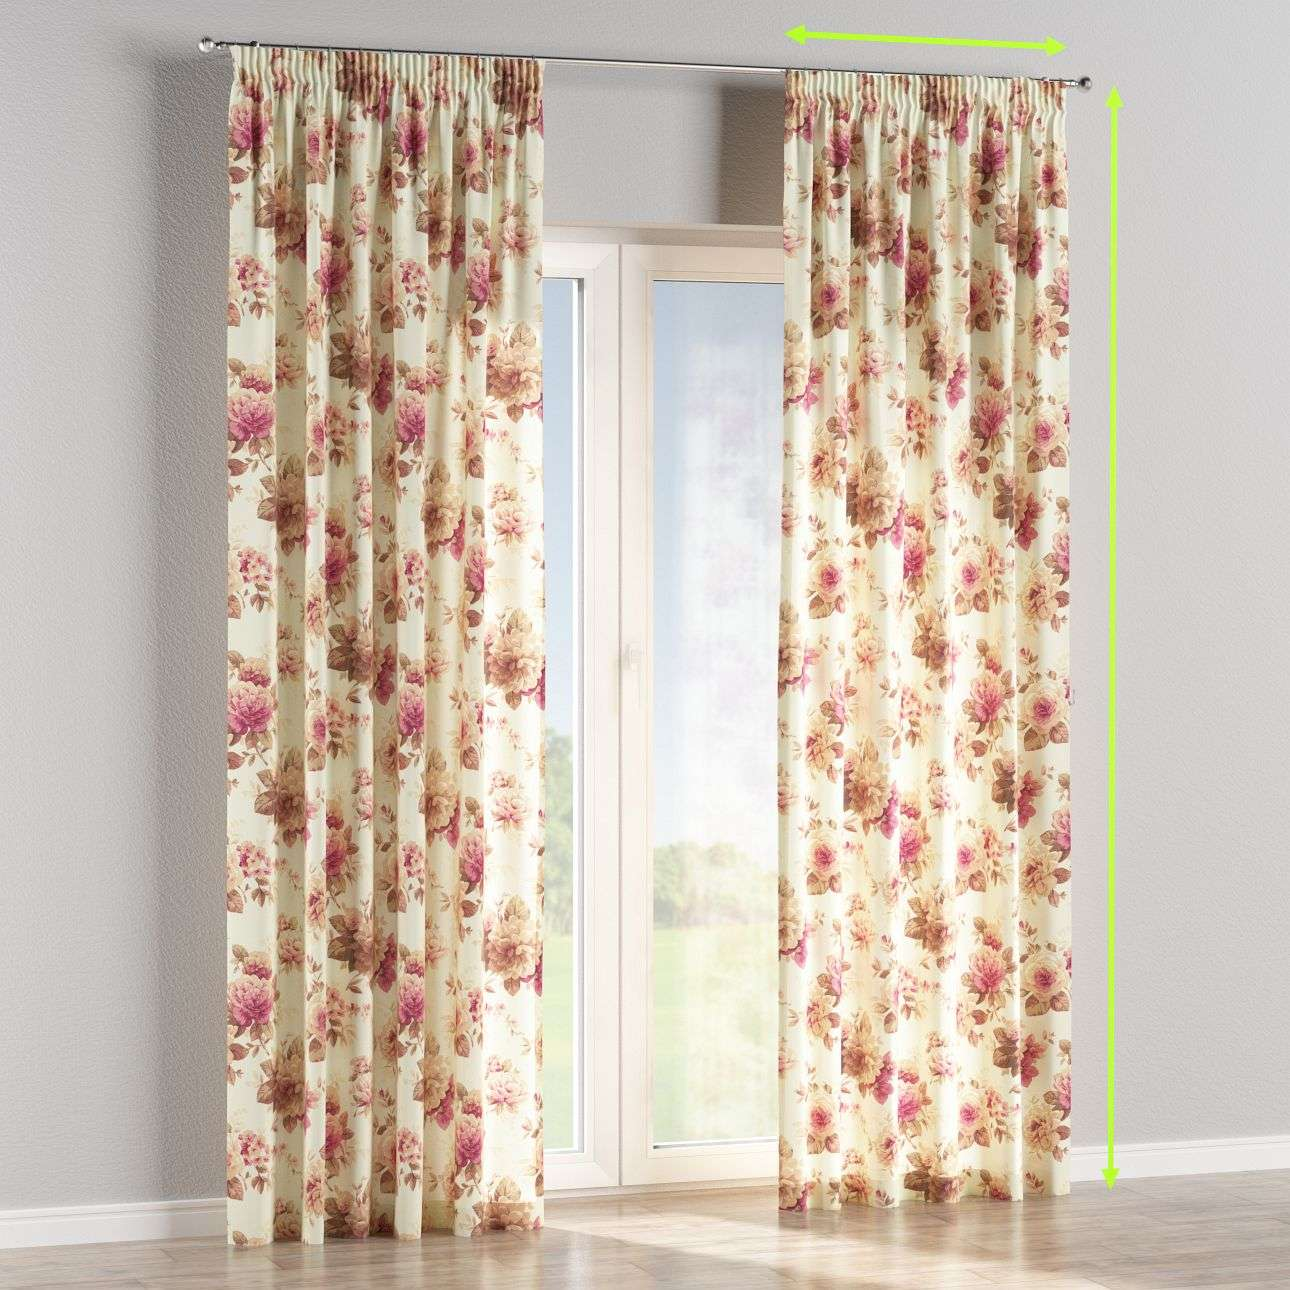 Pencil pleat curtains in collection Mirella, fabric: 141-06